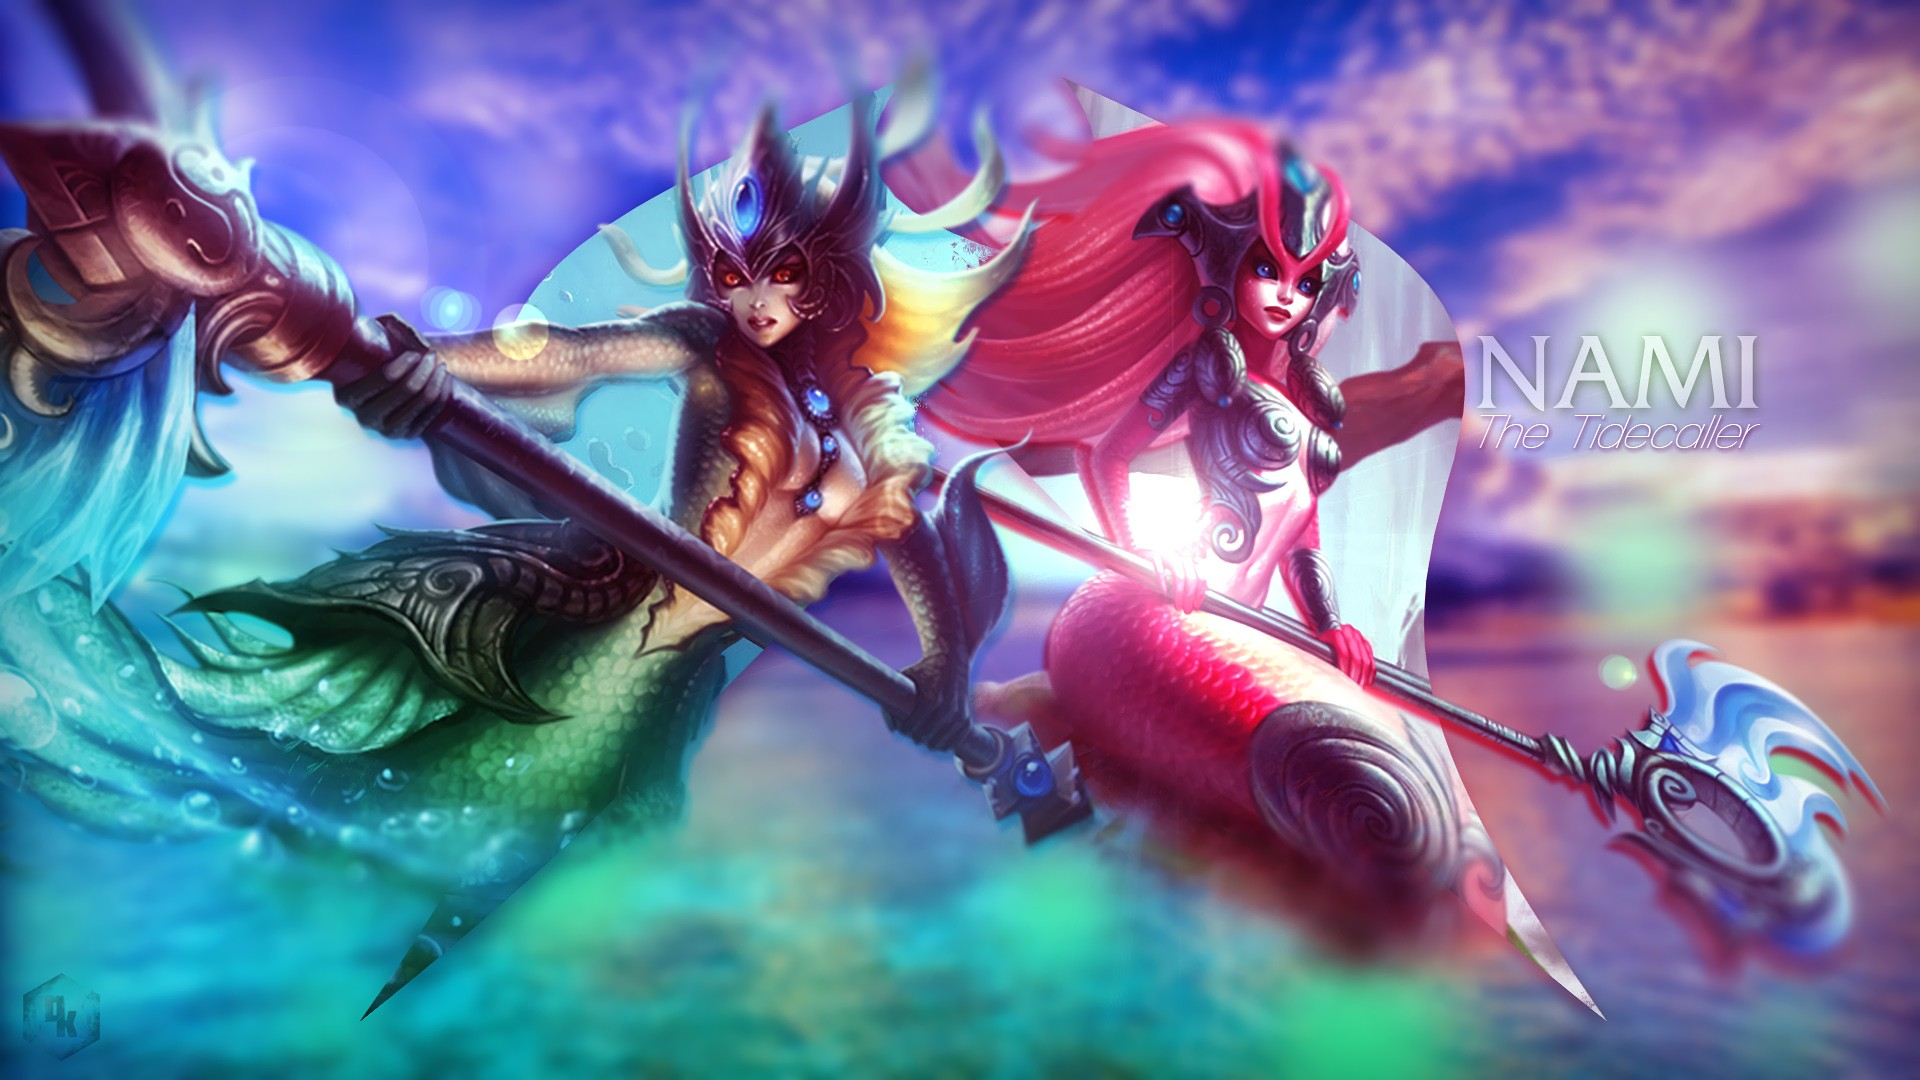 Nami Koi Nami Wallpapers Fan Arts League Of Legends Lol Stats